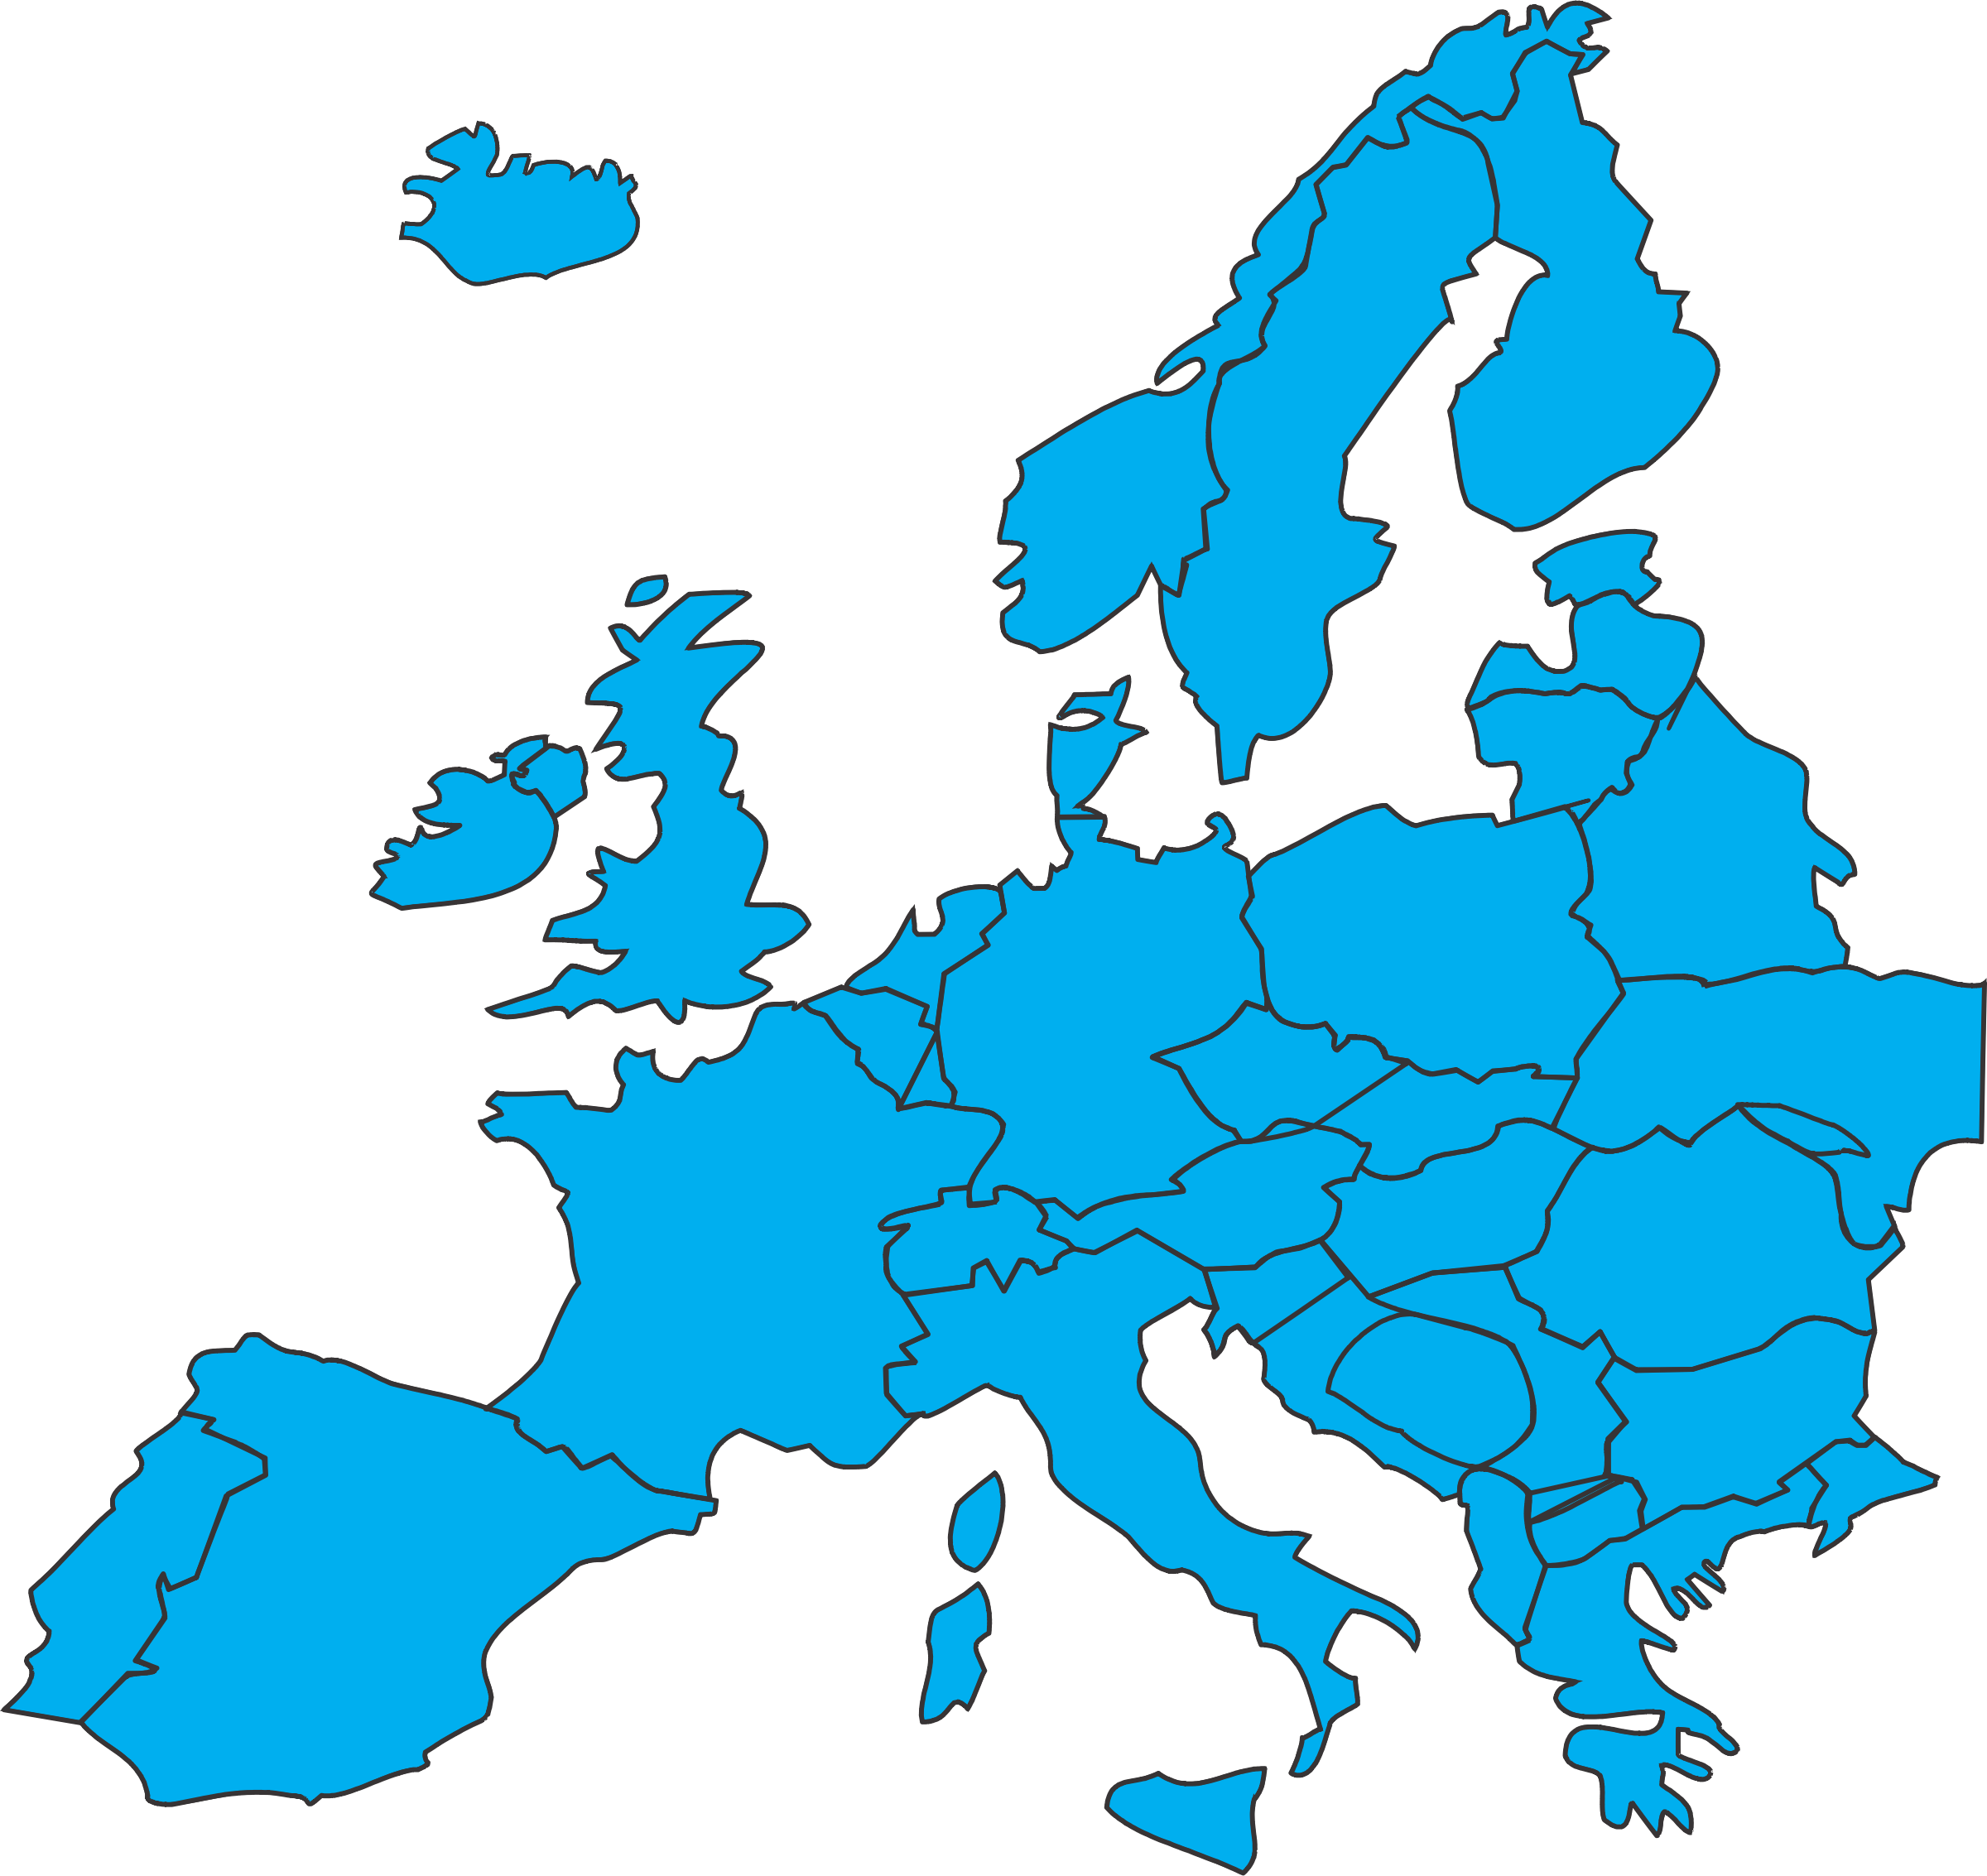 Clipart pencil map. Continent europe and in